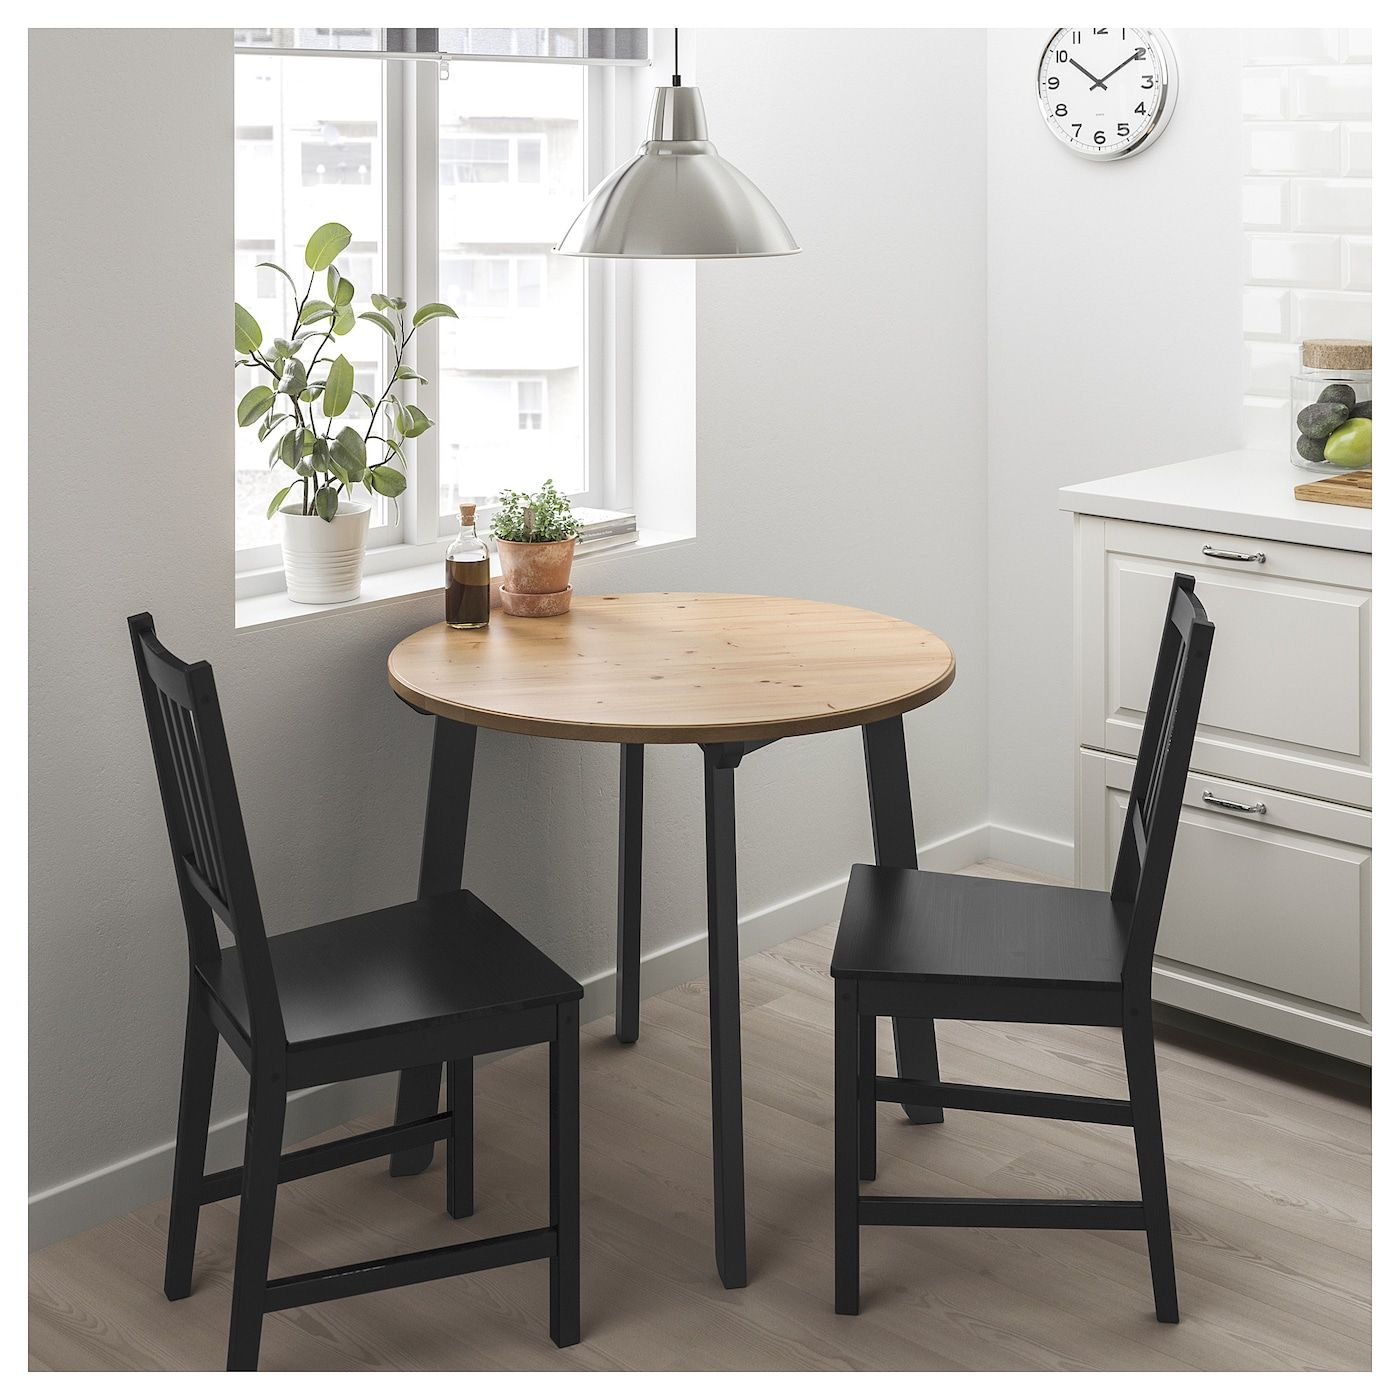 Gamlared Stefan Table And 2 Chairs Light Antique Stain Brown